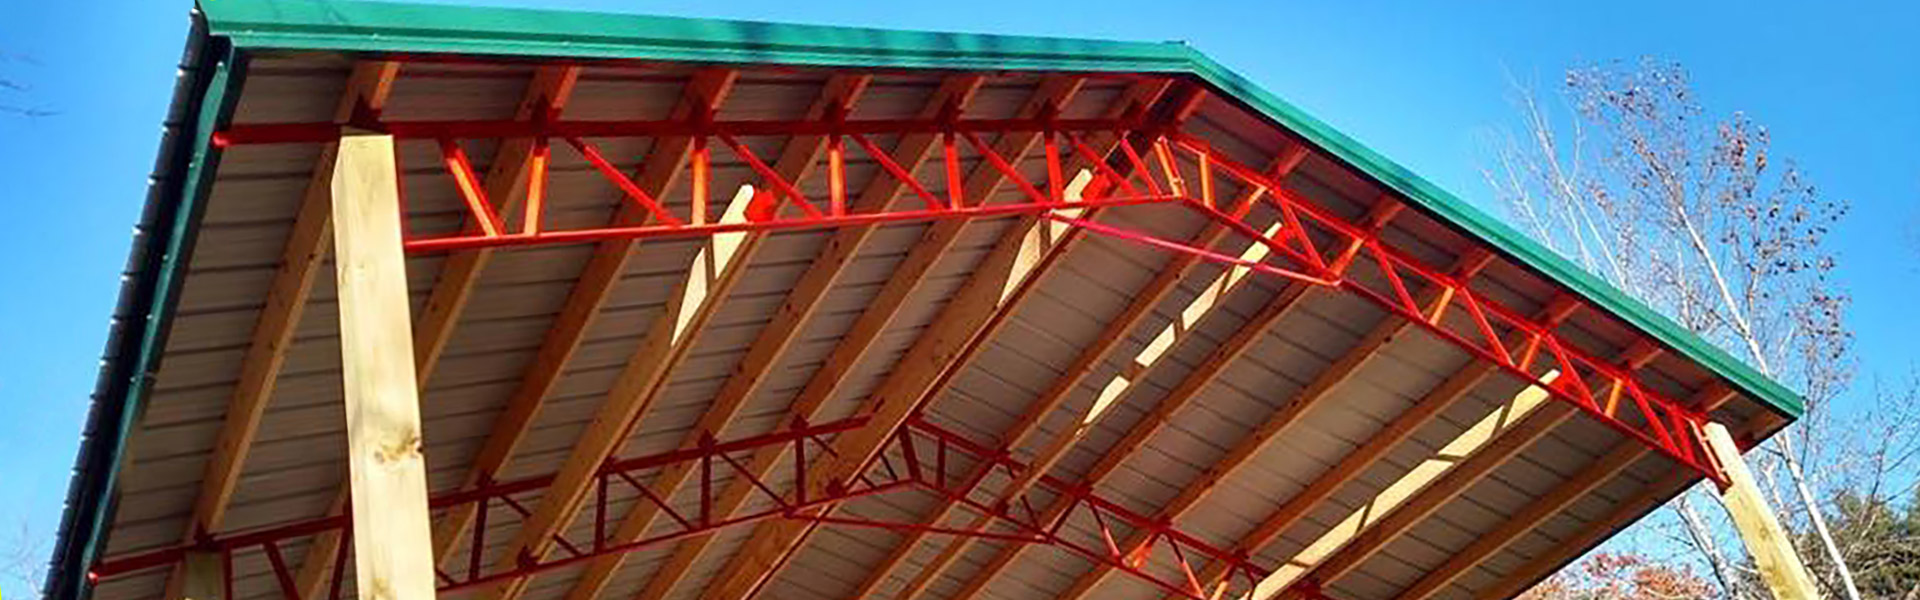 Mistakes You Should Avoid When Getting a New Roof Installed